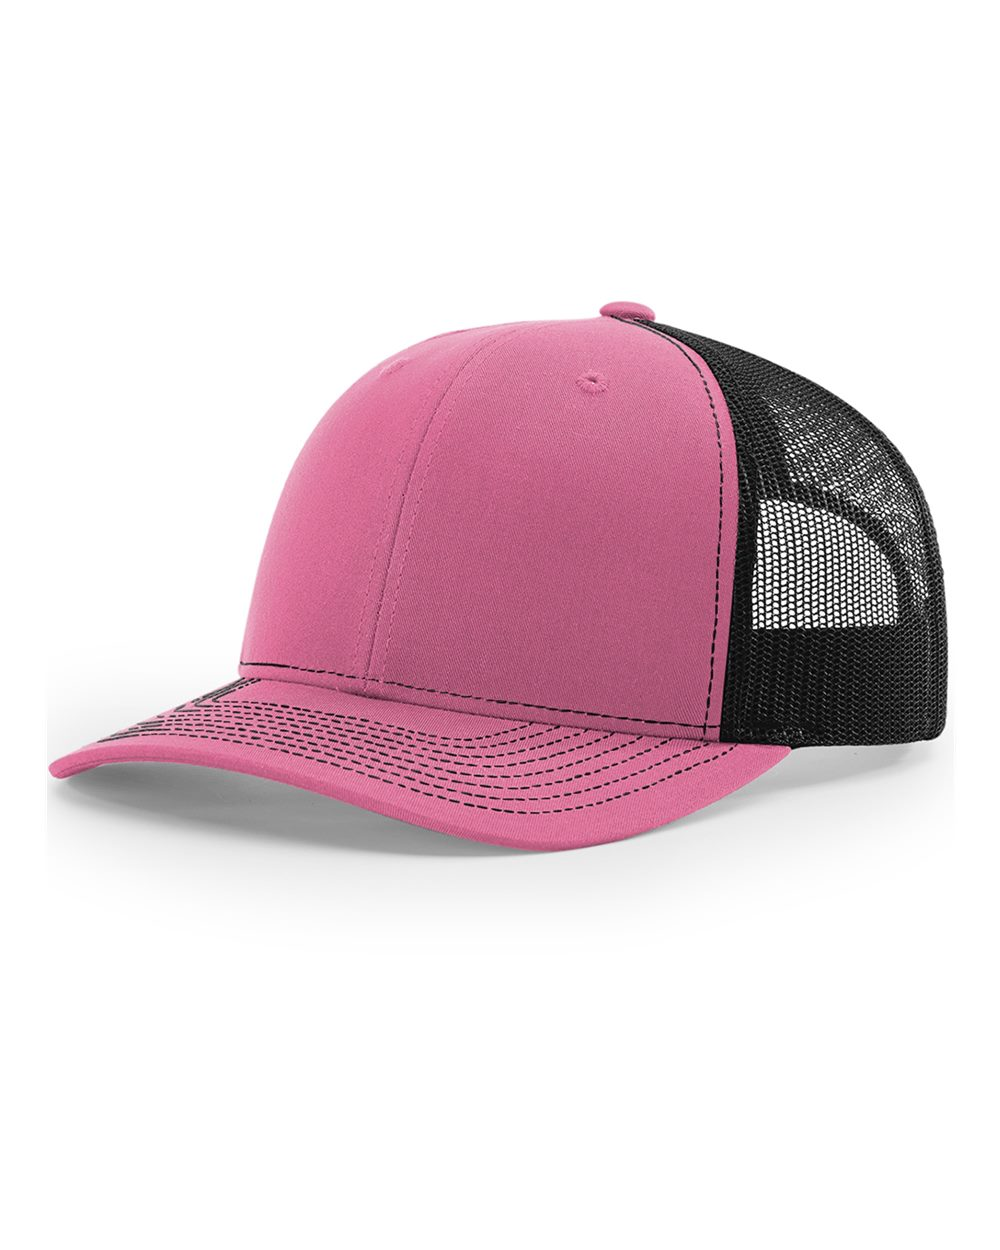 click to view Hot Pink/ Black